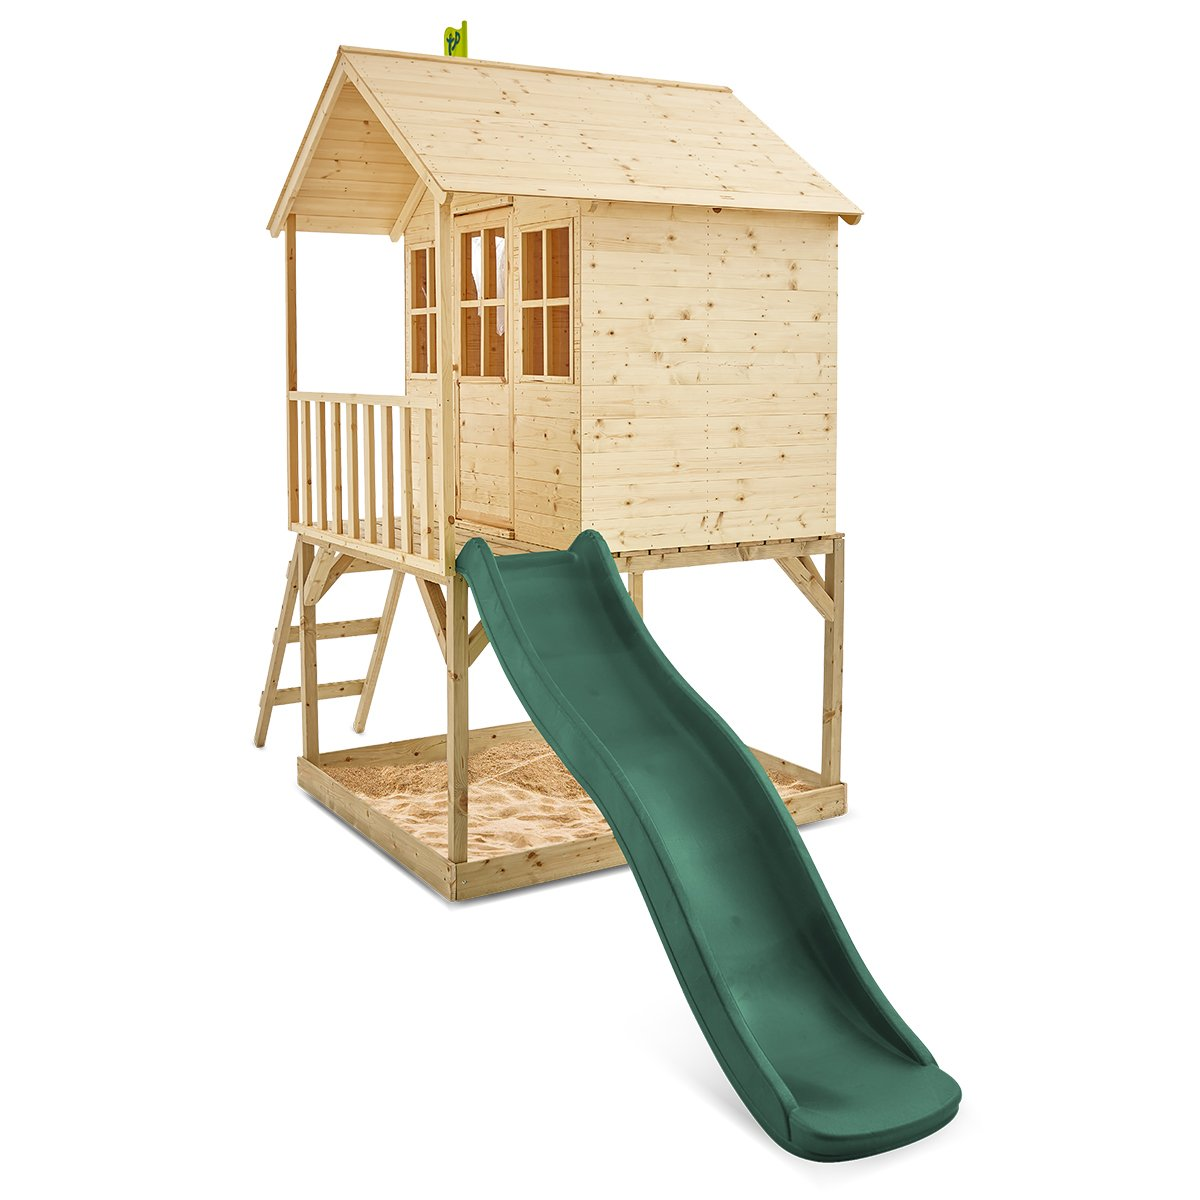 TP Toys Hill Top Wooden Tower Playhouse with 1.8m Slide